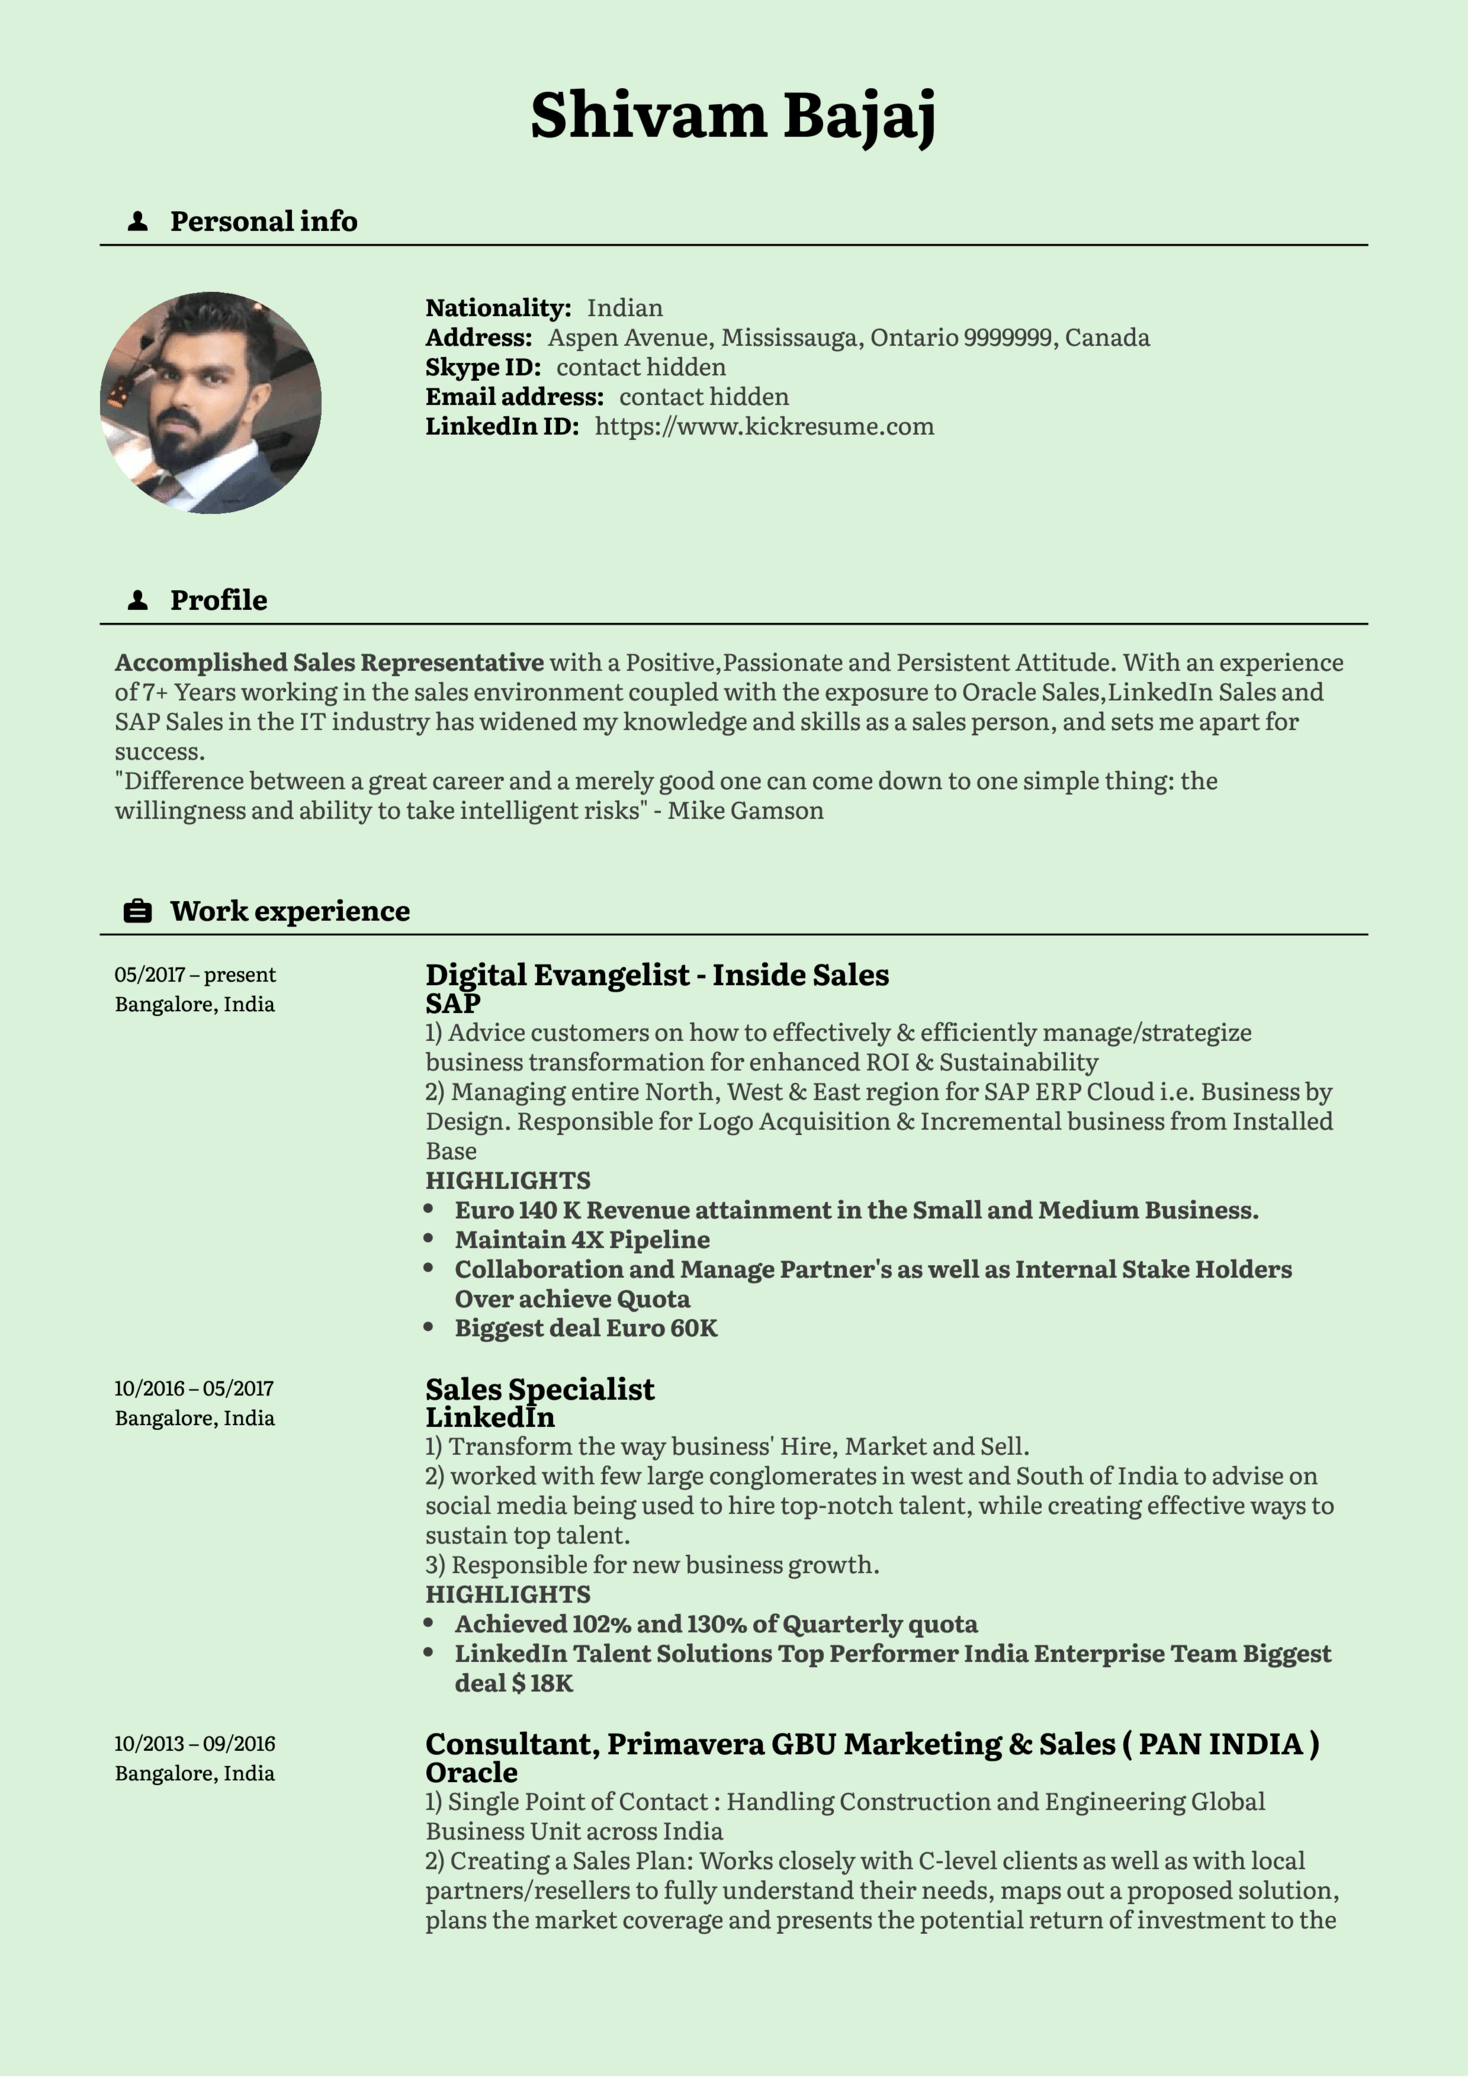 Sap Inside Sales Manager Resume Template  Resume Samples  Career